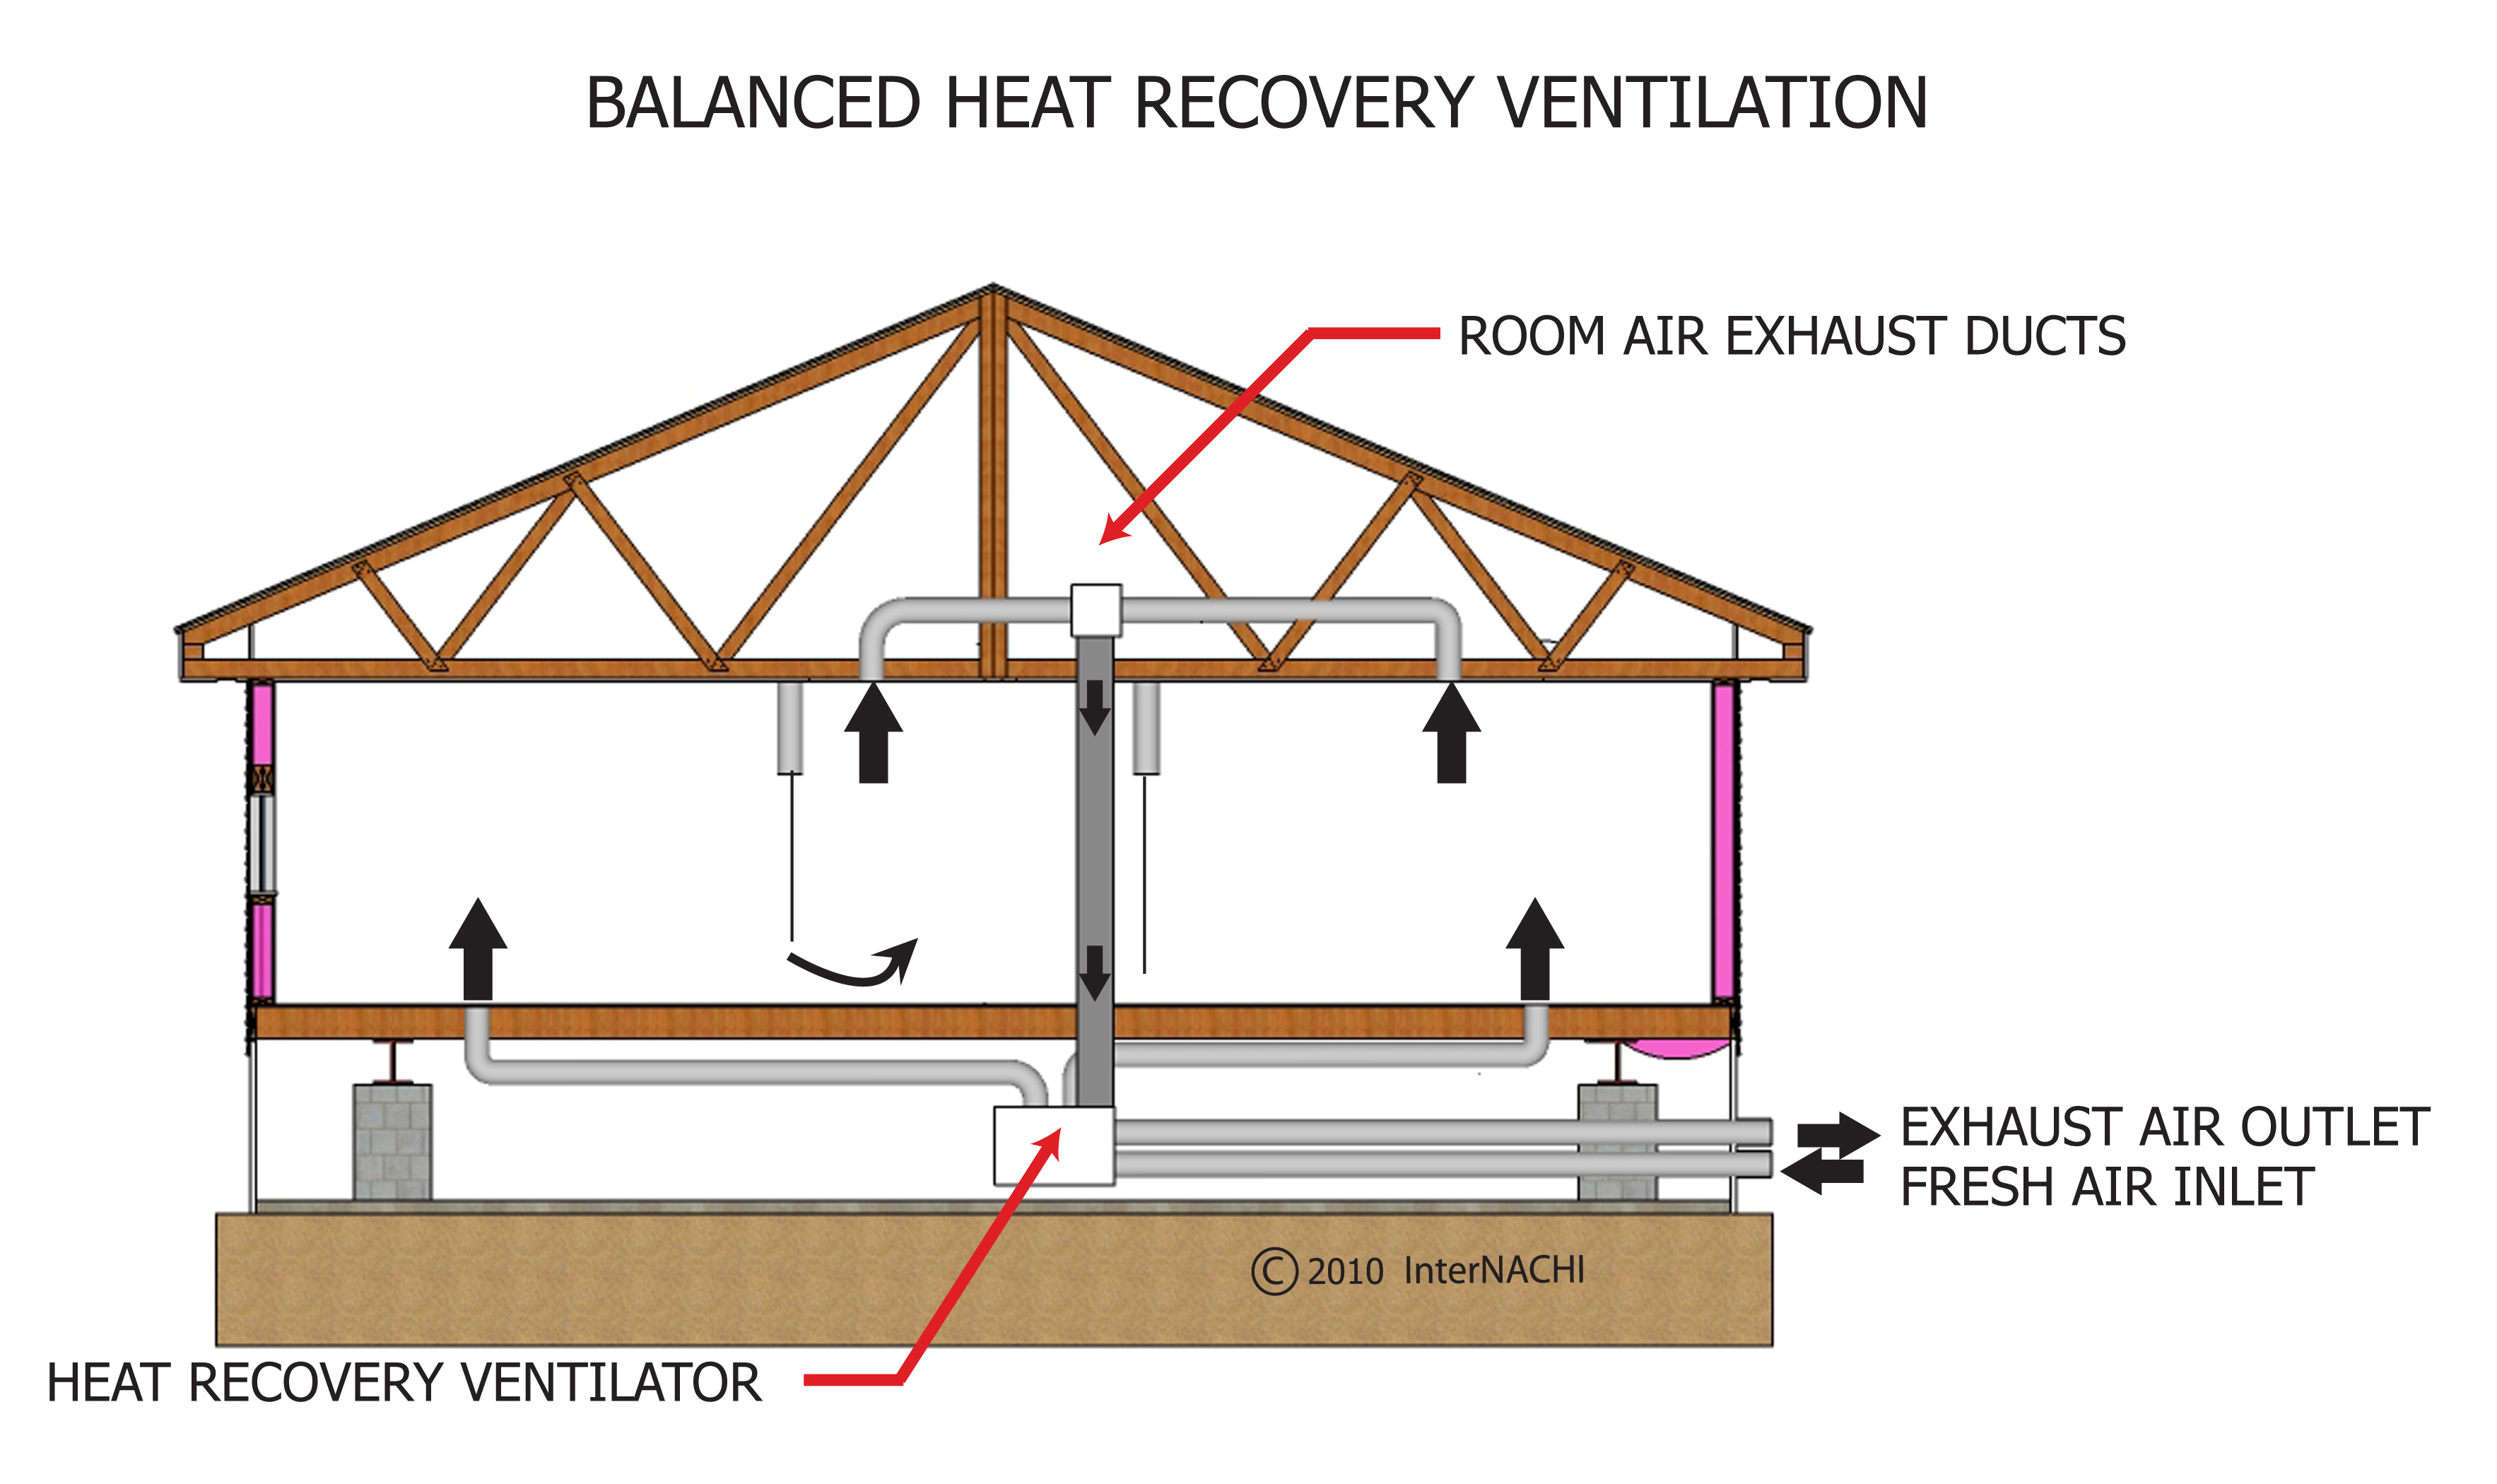 Balanced heat recovery ventilation.